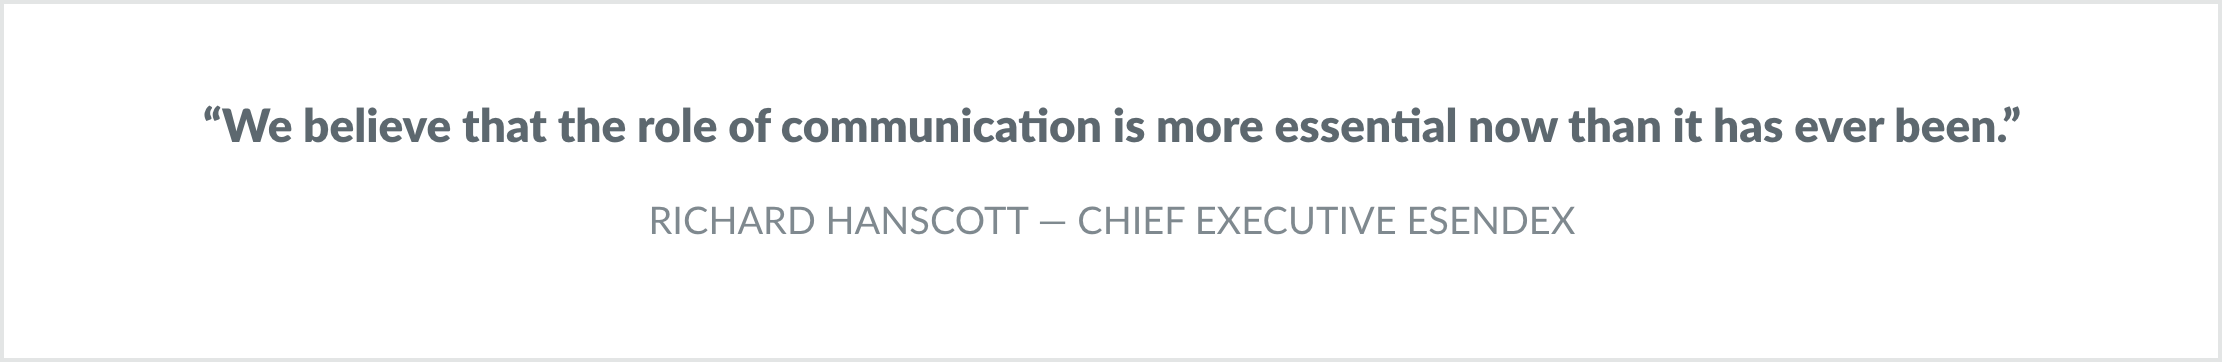 "Quote from CEO: ""We believe that the role of communication is more essential now than it has ever been."""